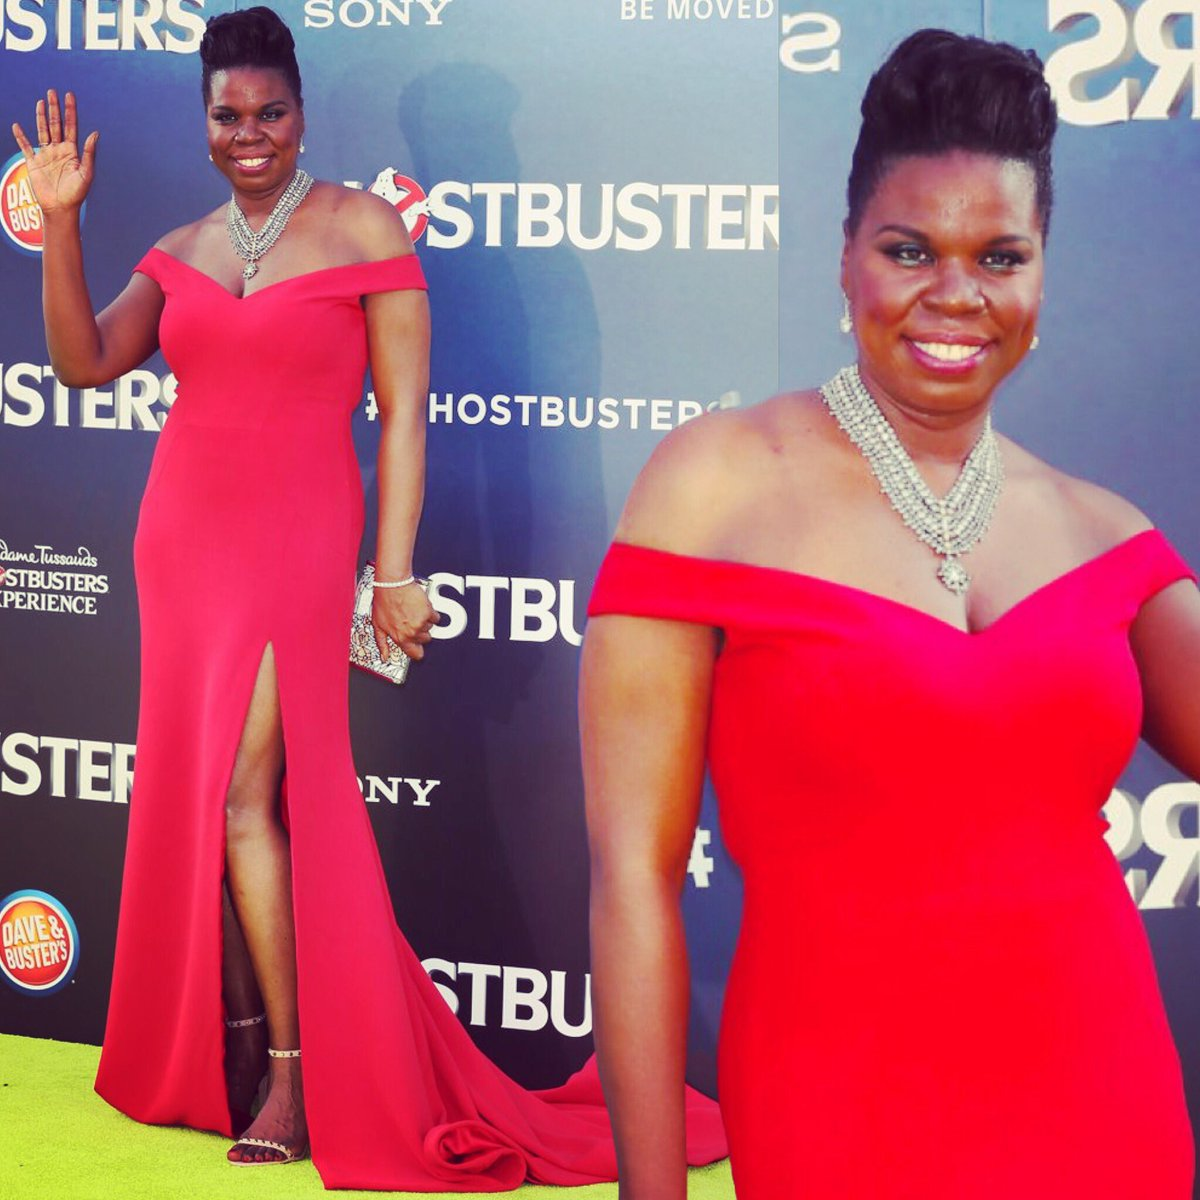 Happy Birthday to this amazing and beautiful women Leslie Jones! Hope you have the best day ever! @Lesdoggg